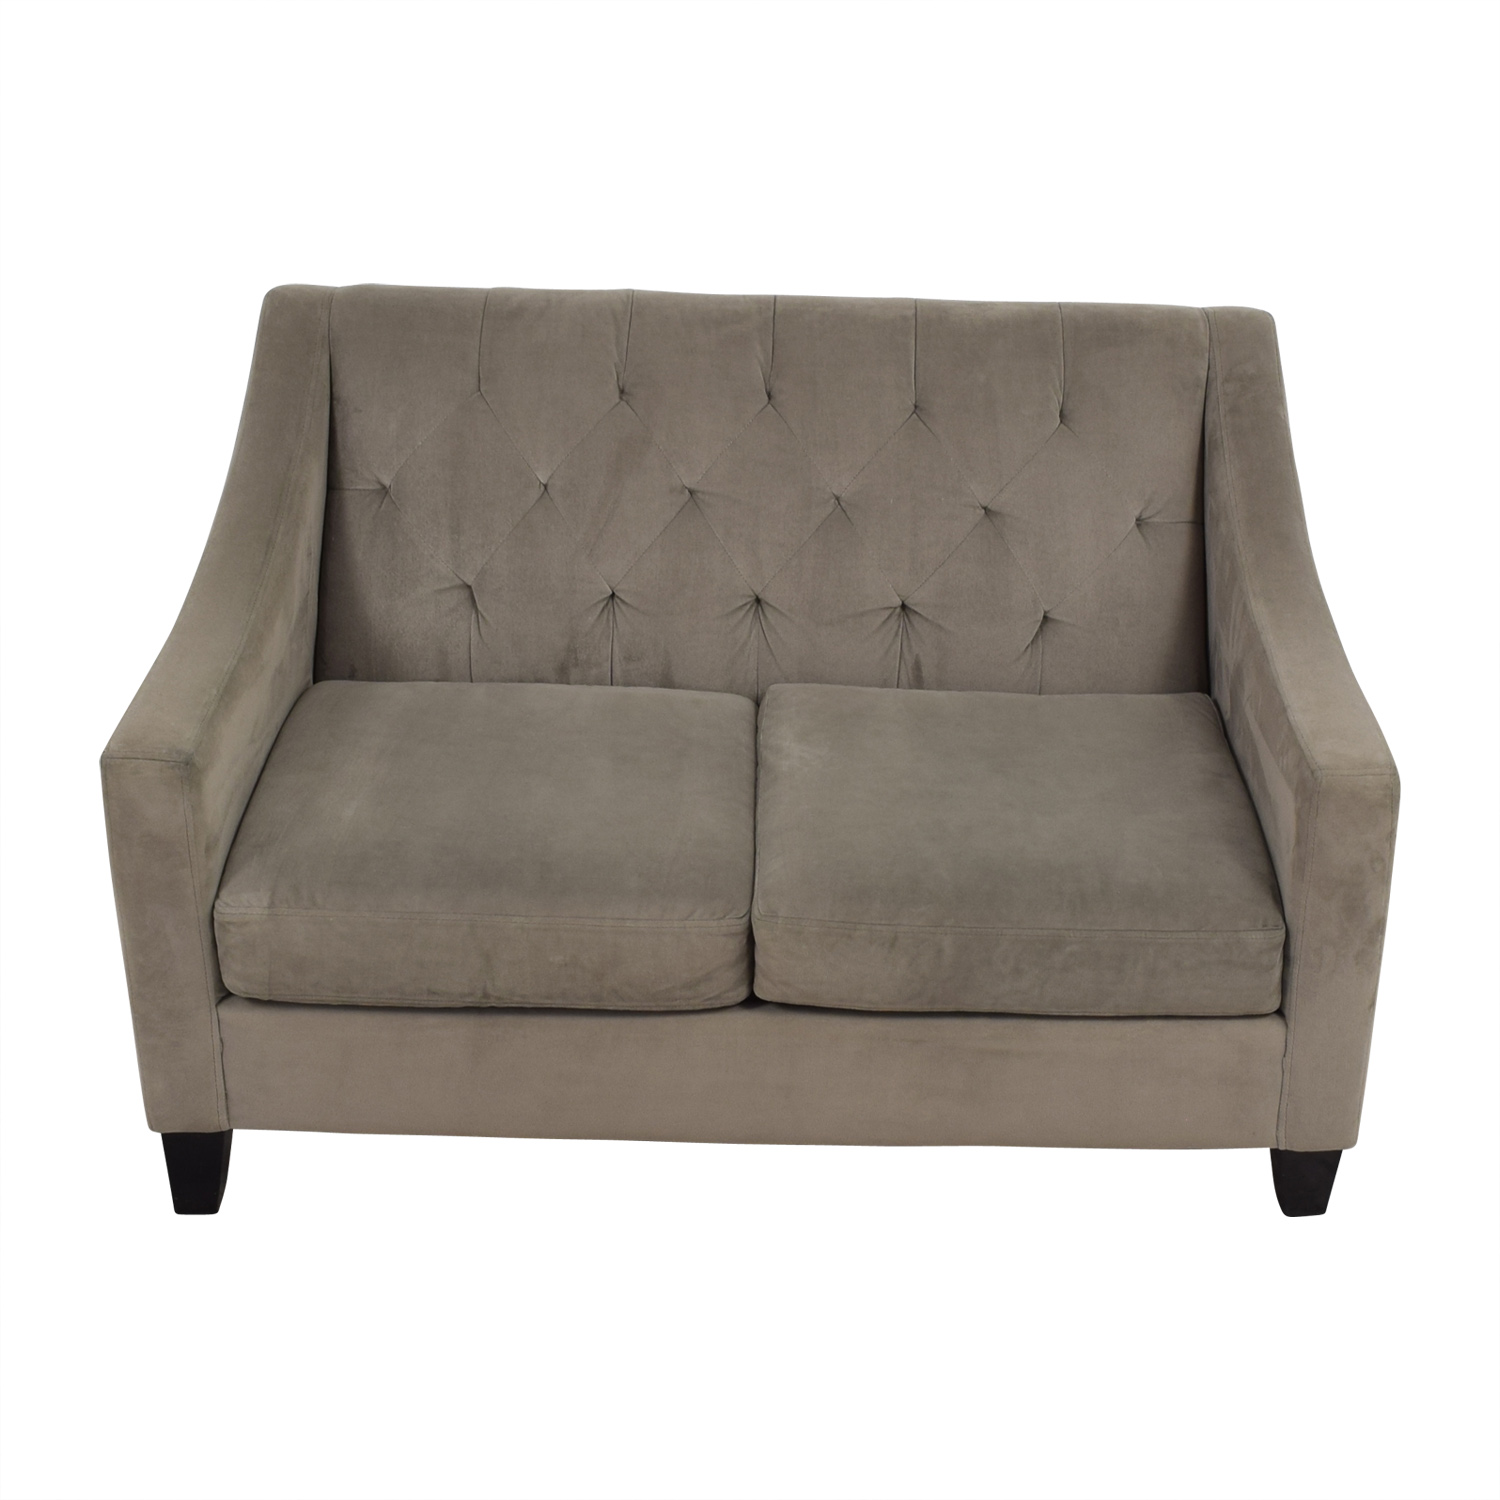 shop Better by Design Grey Tufted Two-Cushion Sofa Better by Design Classic Sofas